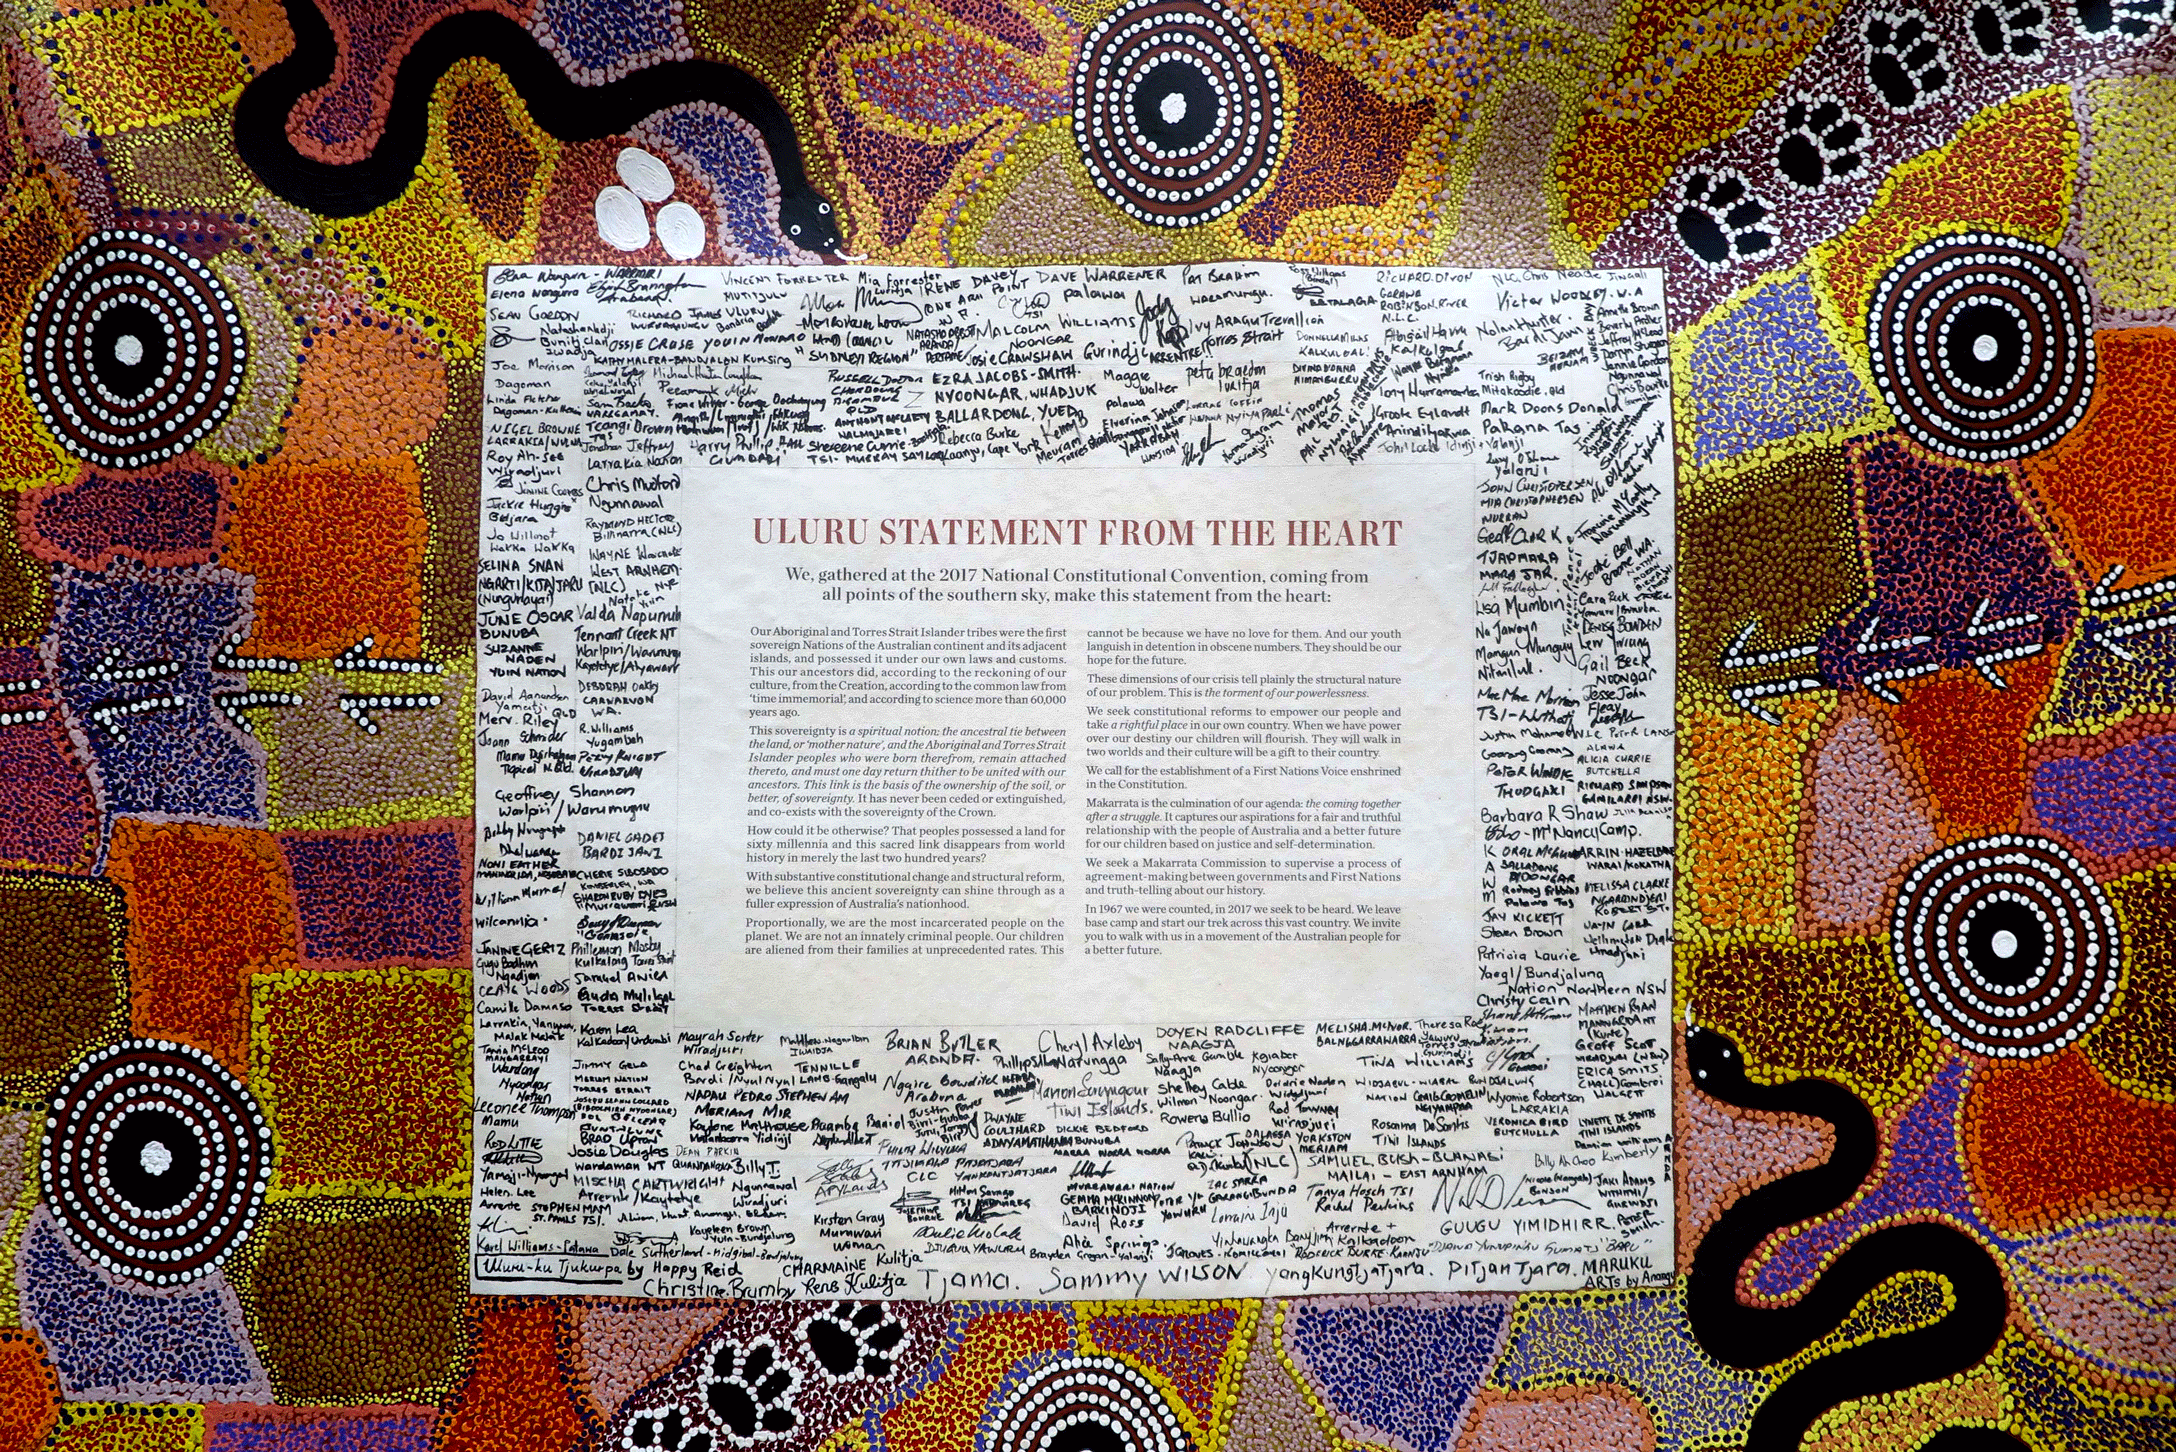 Uluru Statement From the Heart